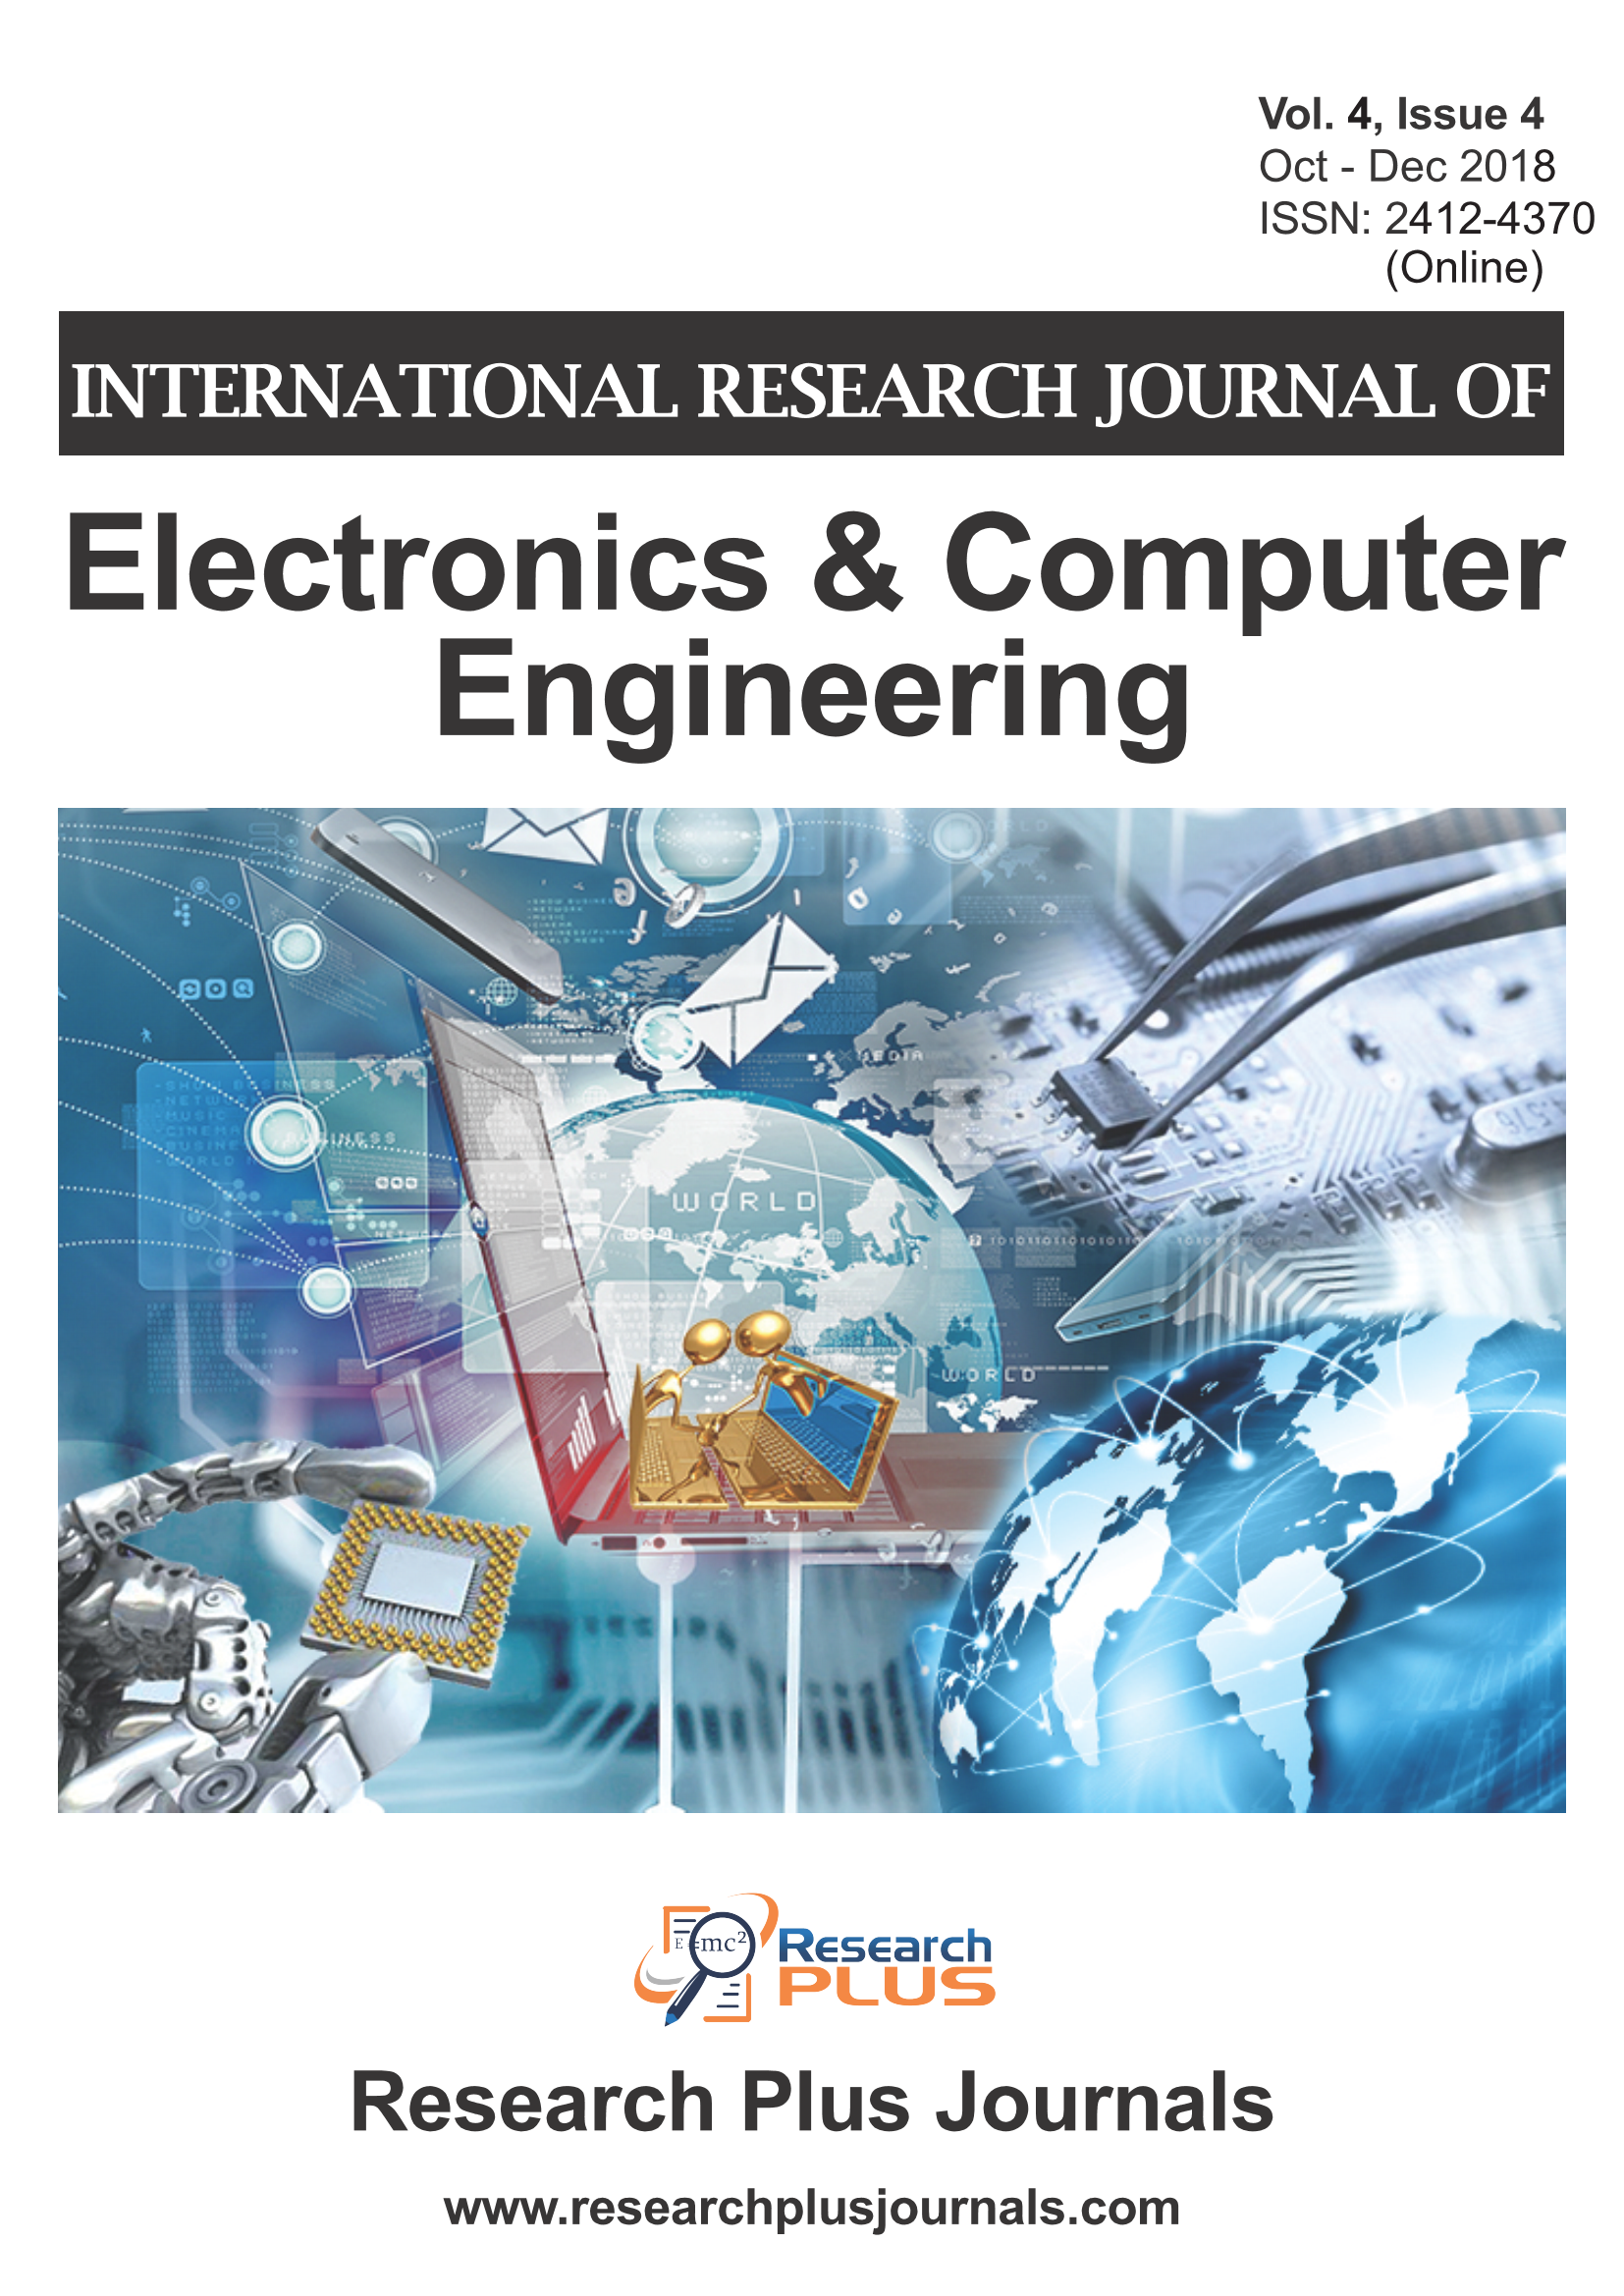 Volume 4, Issue 4, International Research Journal of Electronics & Computer Engineering (IRJECE) (Online ISSN : 2412-4370)